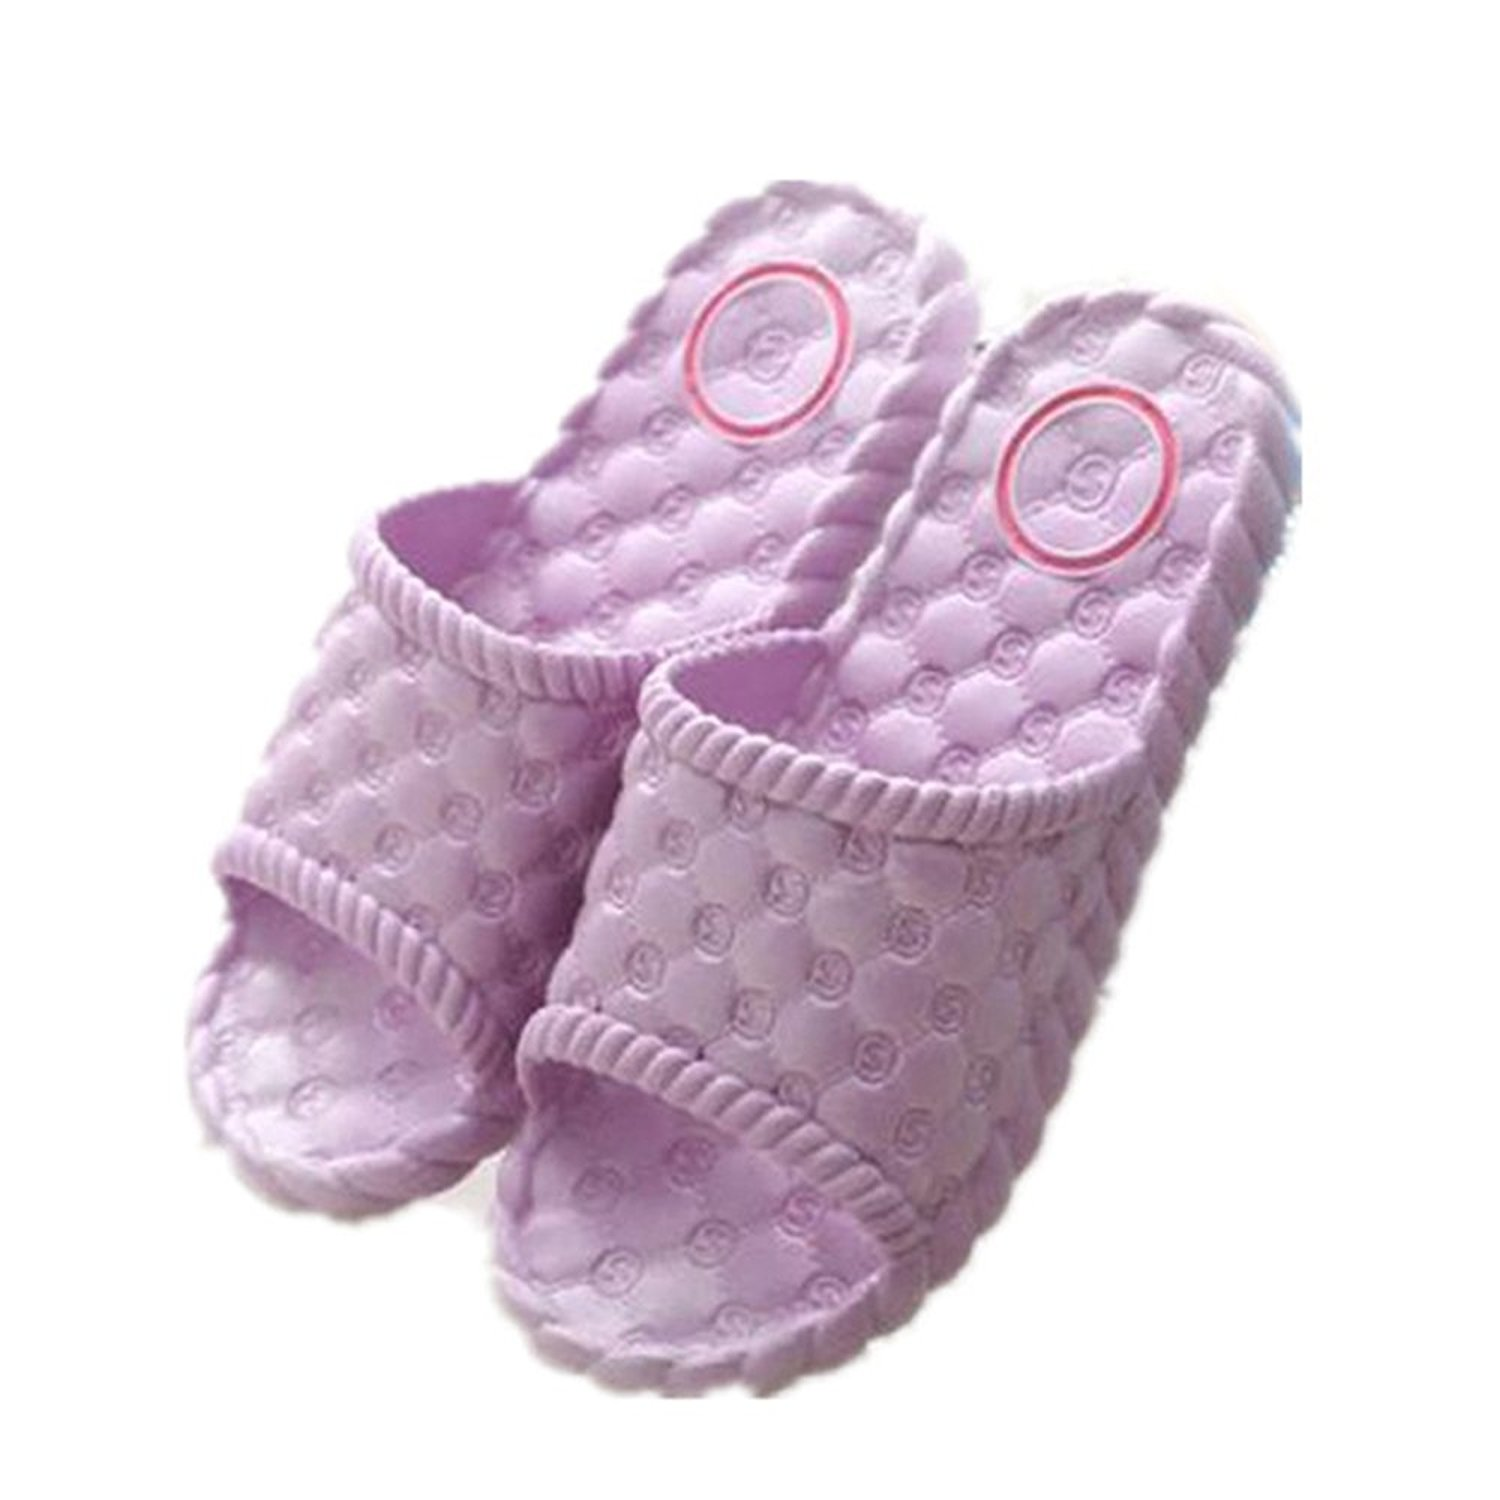 YSDAI summer ladies slippers,men and women home shoes,non-slip bath shoes,couple home sandals,light pink